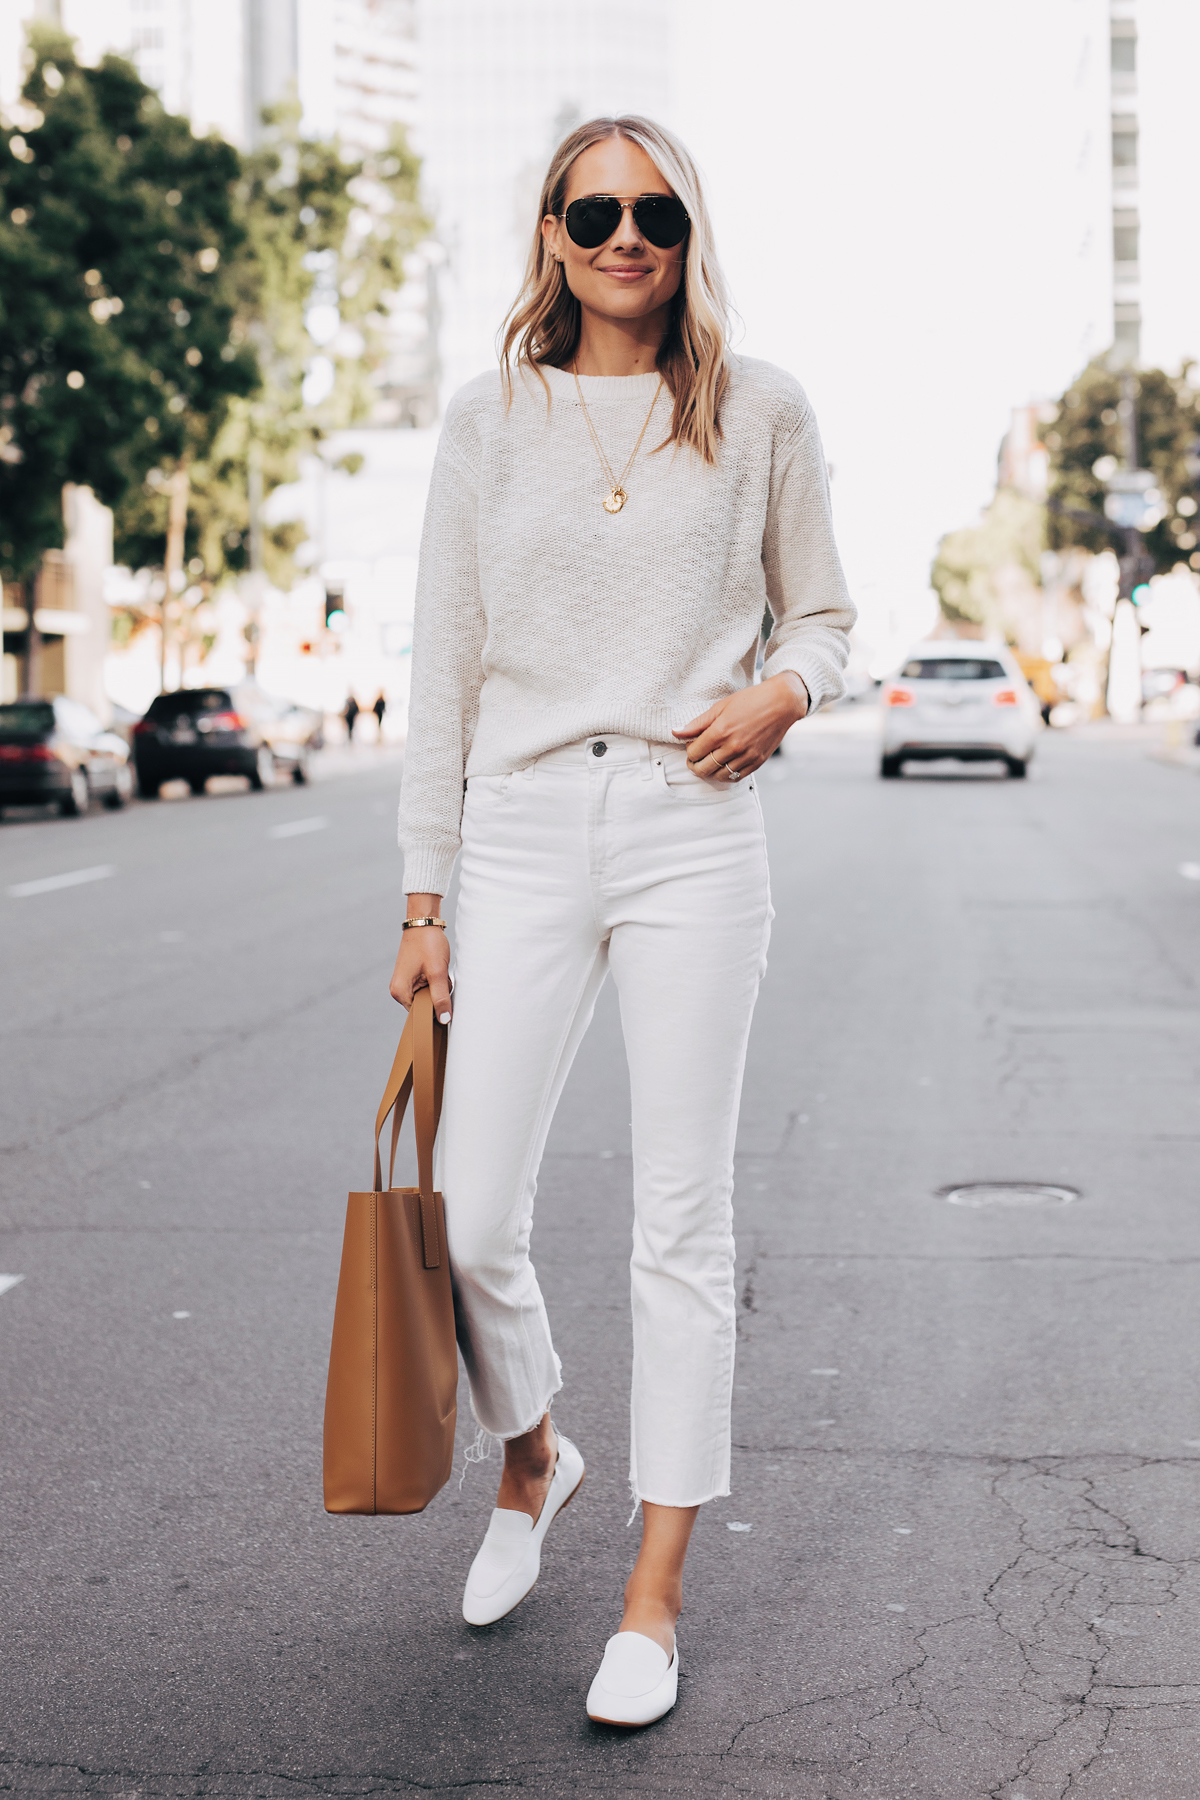 Blonde Woman Wearing Everlane Sand Cotton Linen Crew White Cropped Jeans White Day Loafer Tan Tote Fashion Jackson San Diego Fashion Blogger Street Style